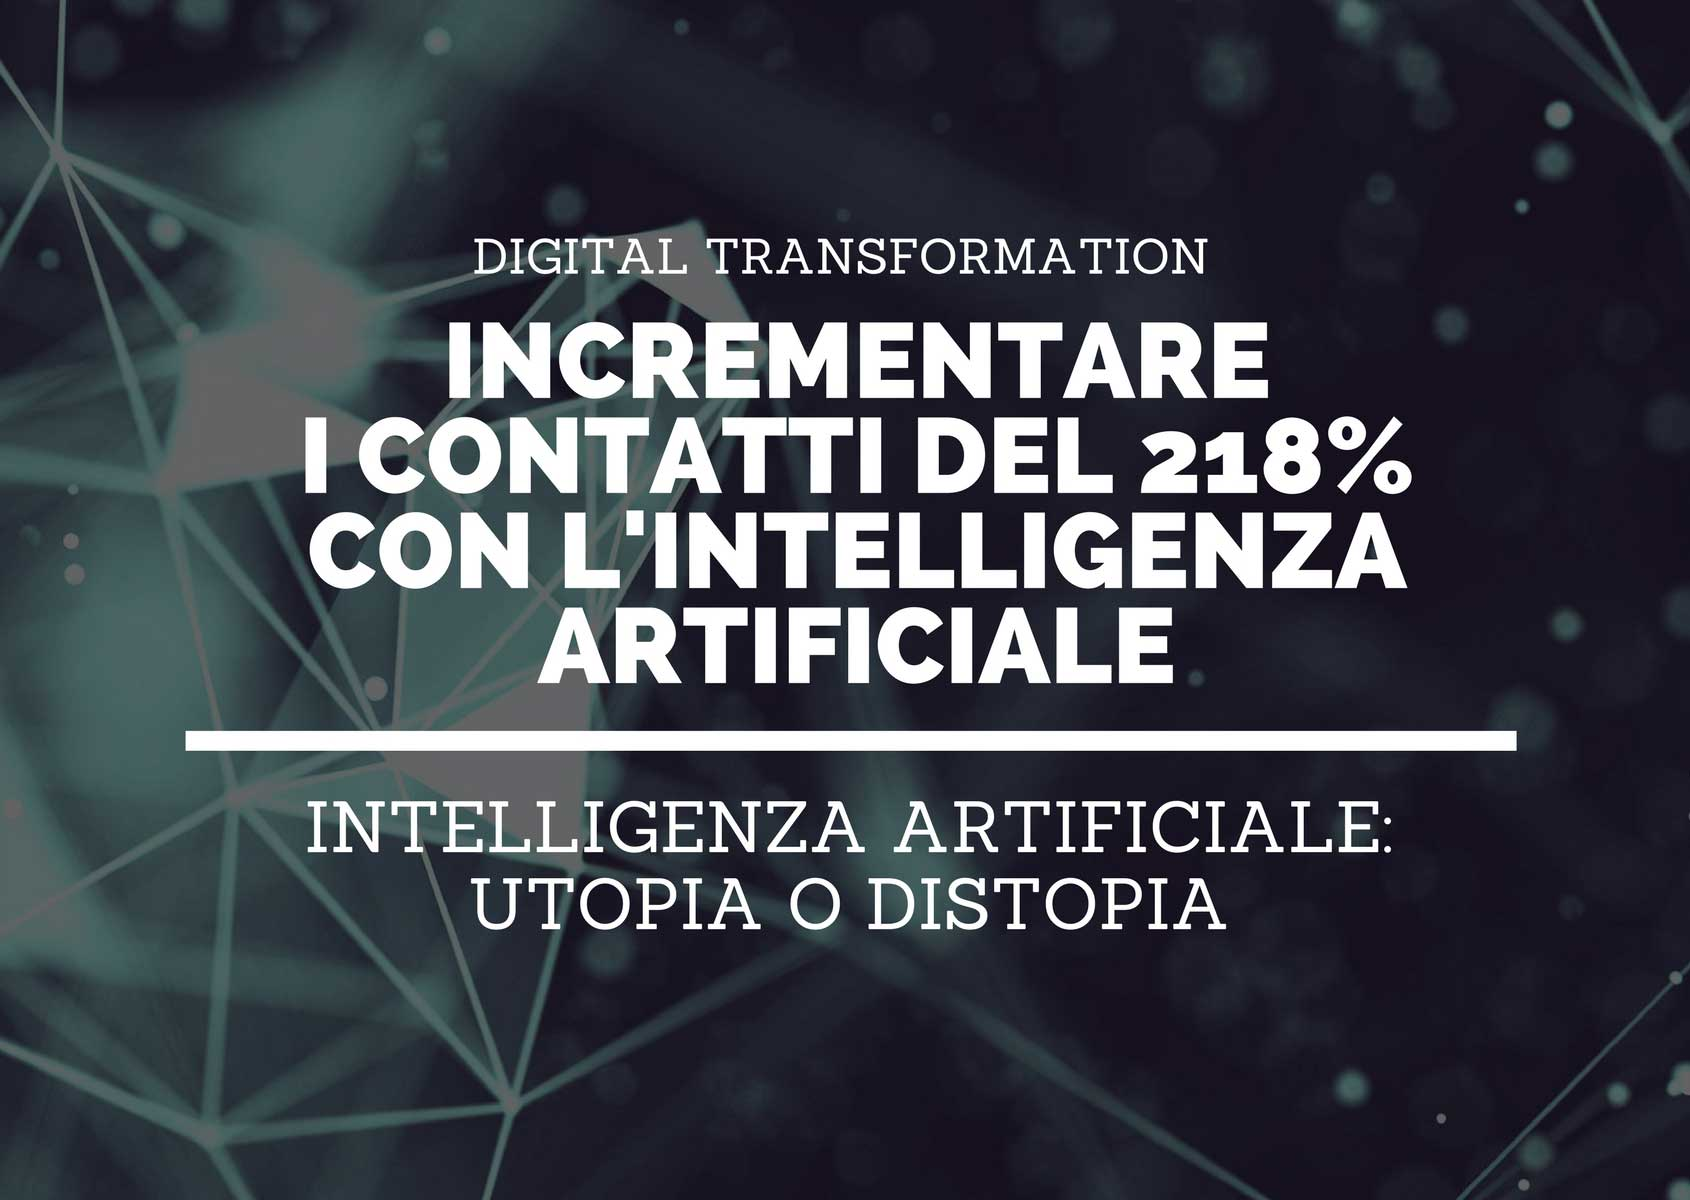 Quando una palestra incrementa i contatti del 218% grazie all'intelligenza artificiale